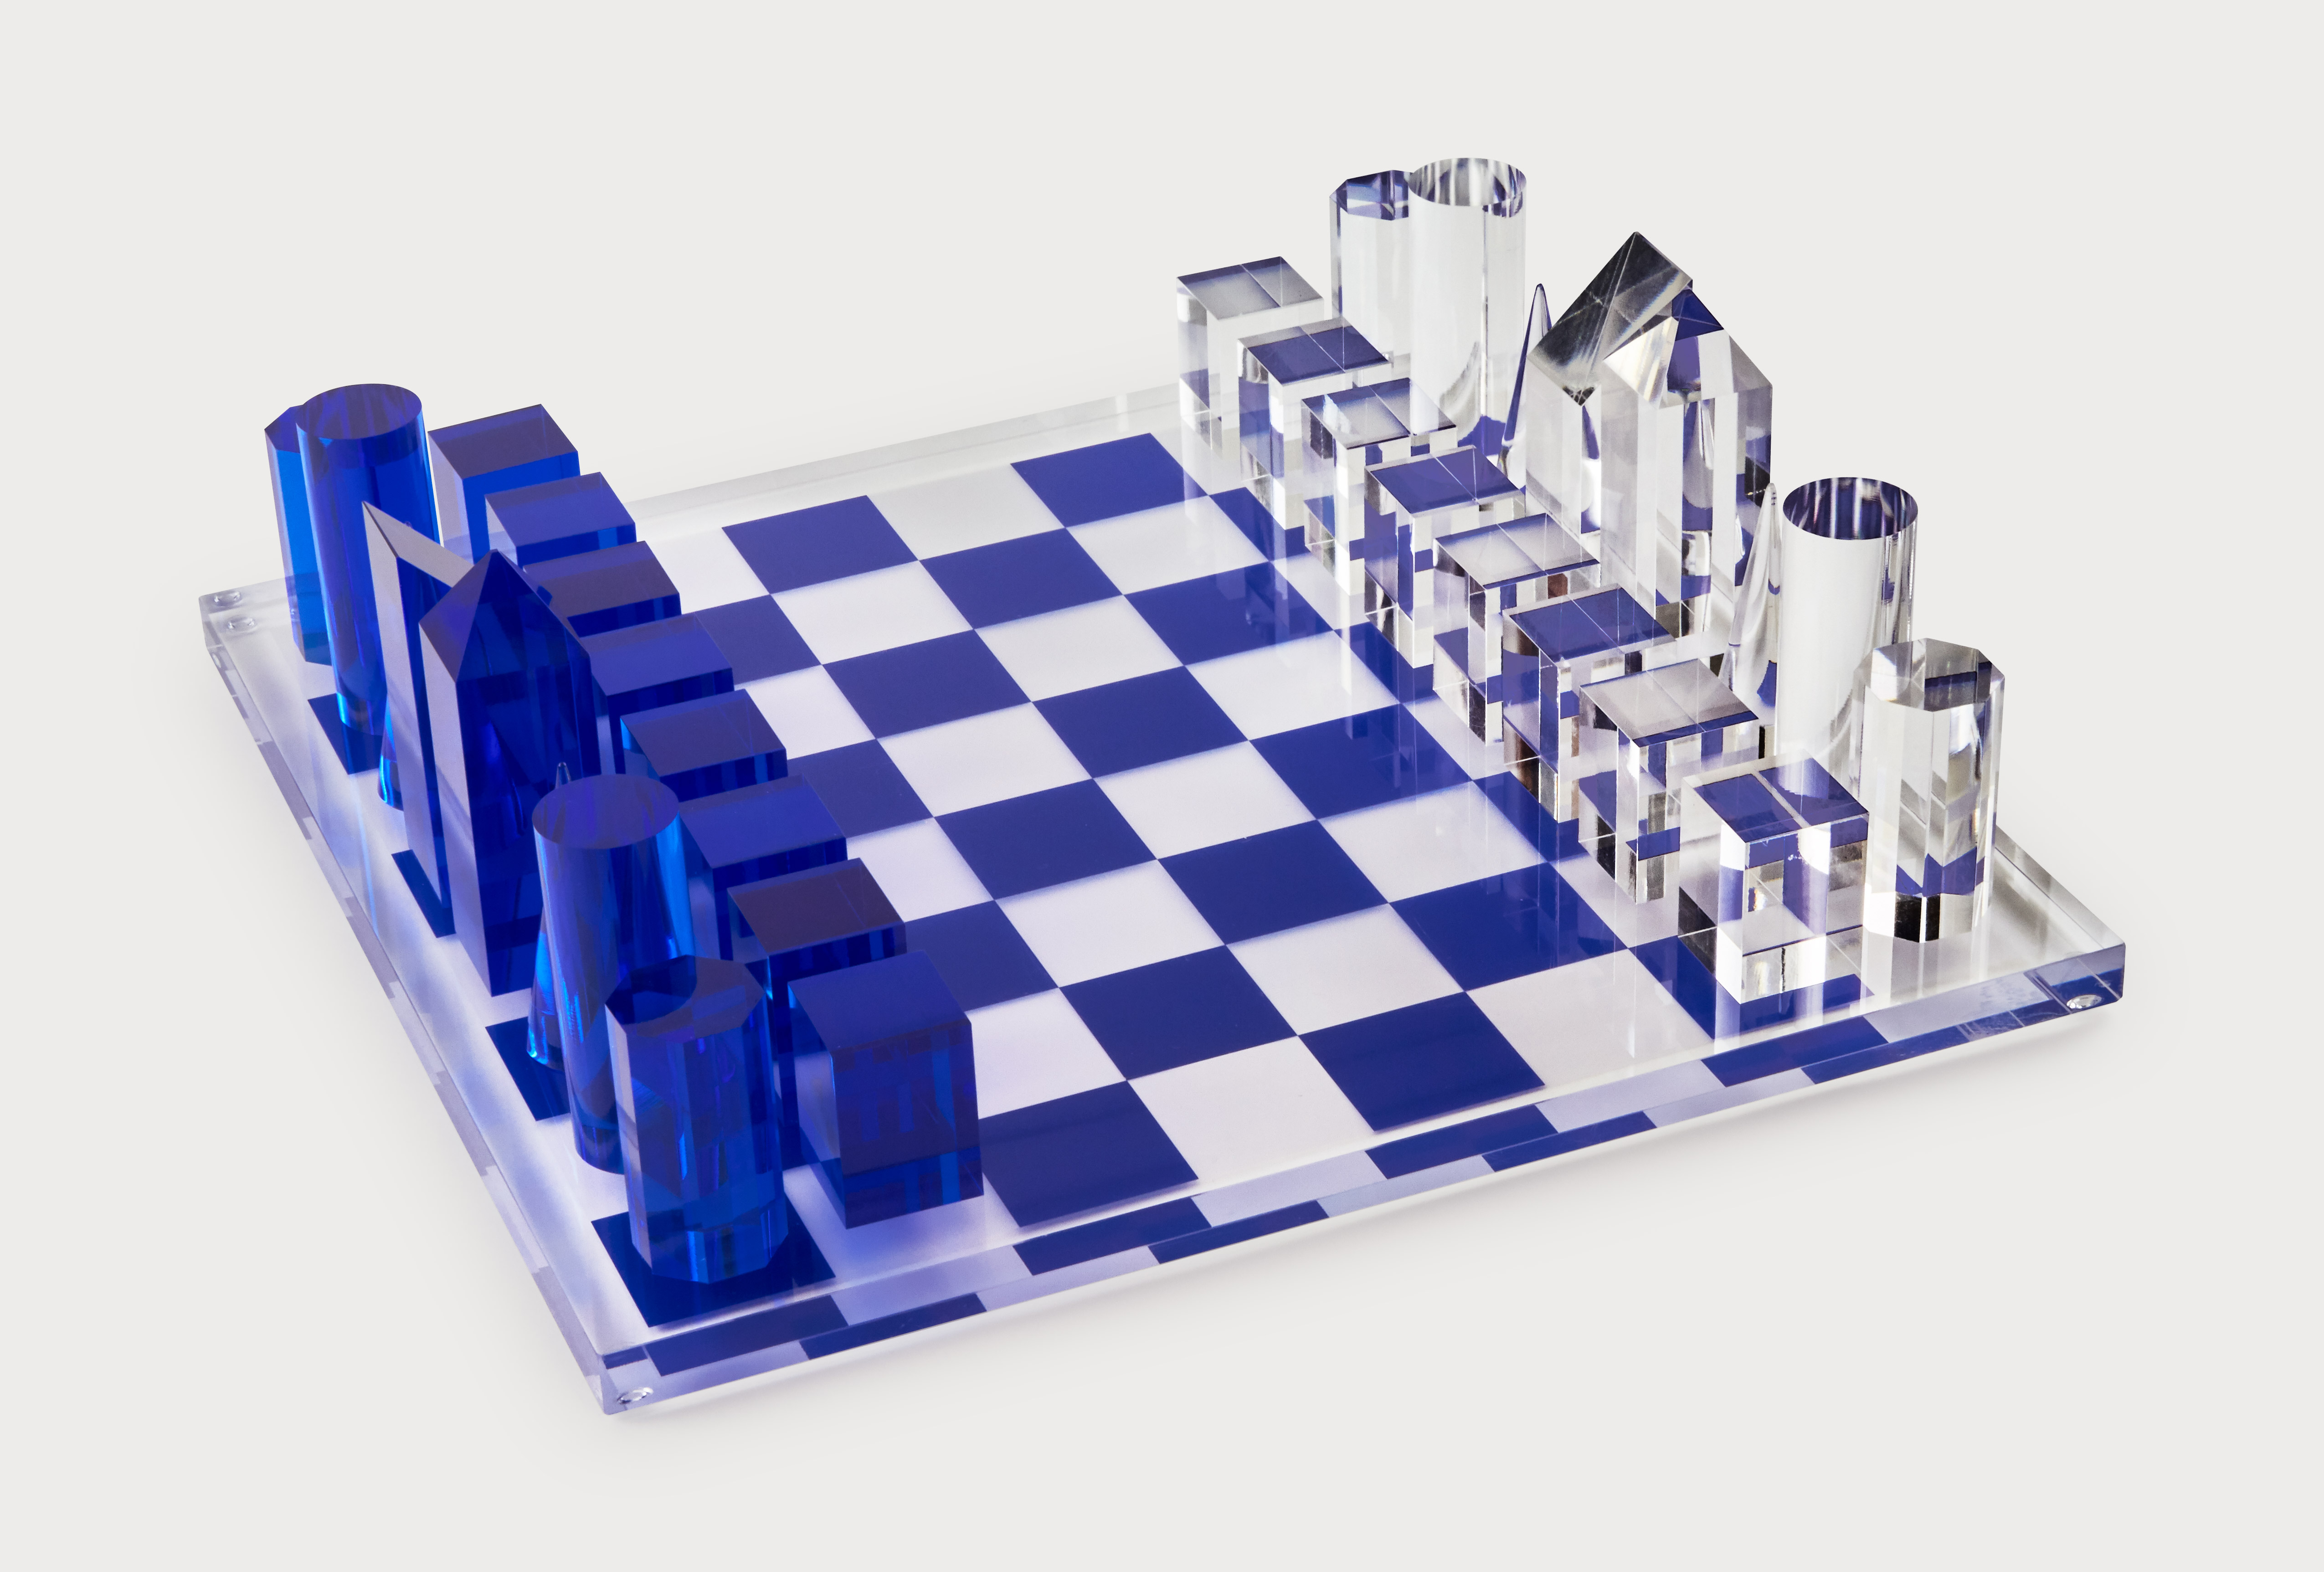 ha118ches-acrylic-lucite-luxury-cobalt-blue-clear-modern-small-chess-set.jpg